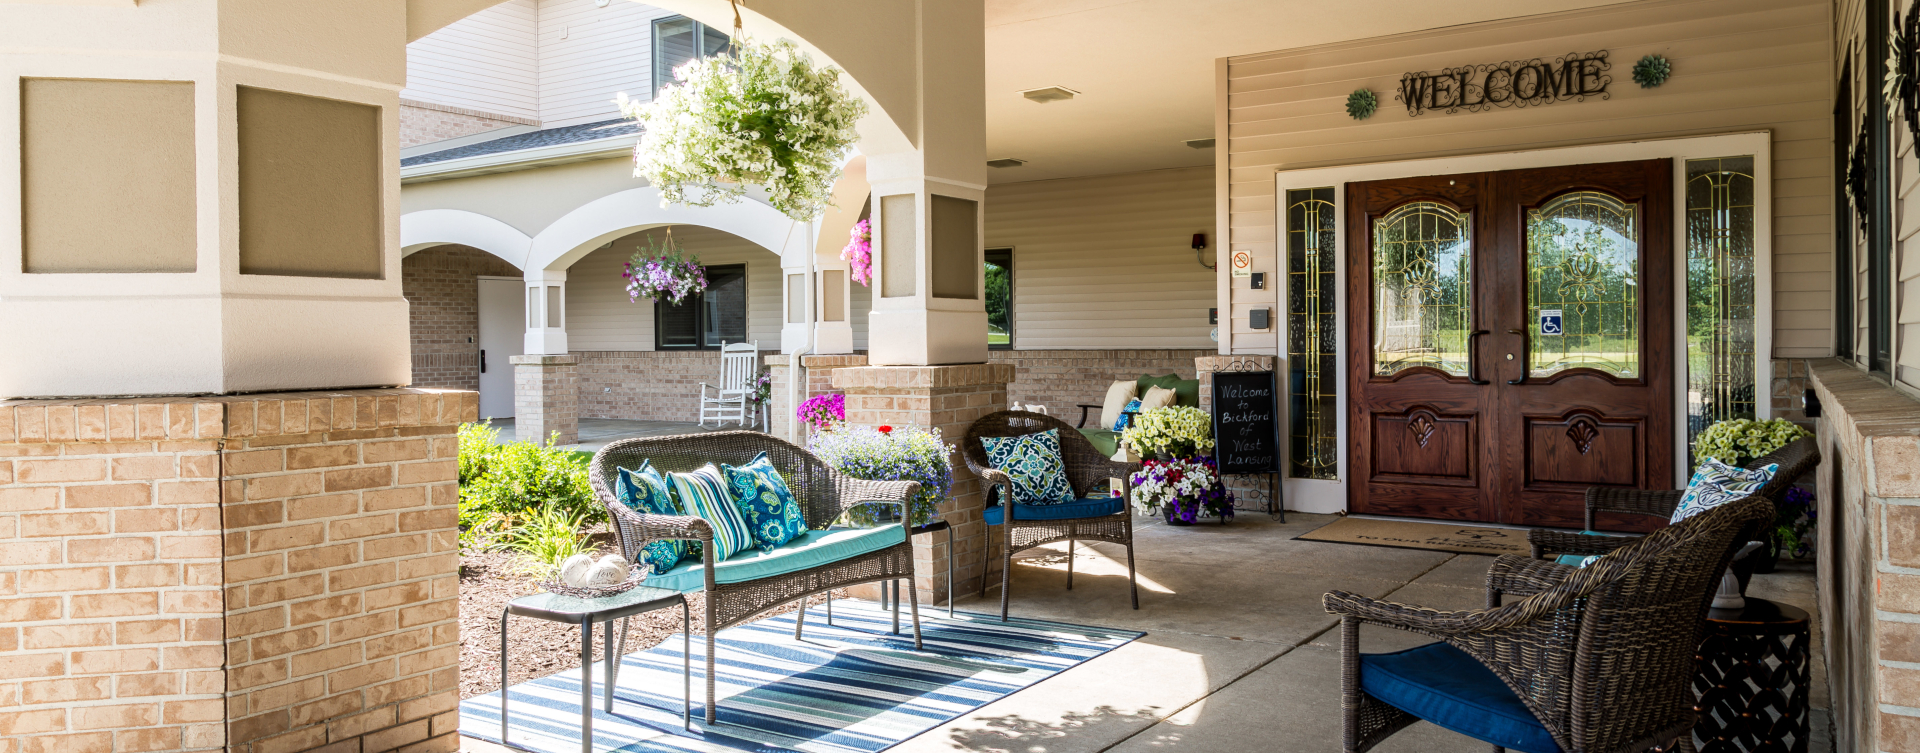 Enjoy conversations with friends on the porch at Bickford of West Lansing